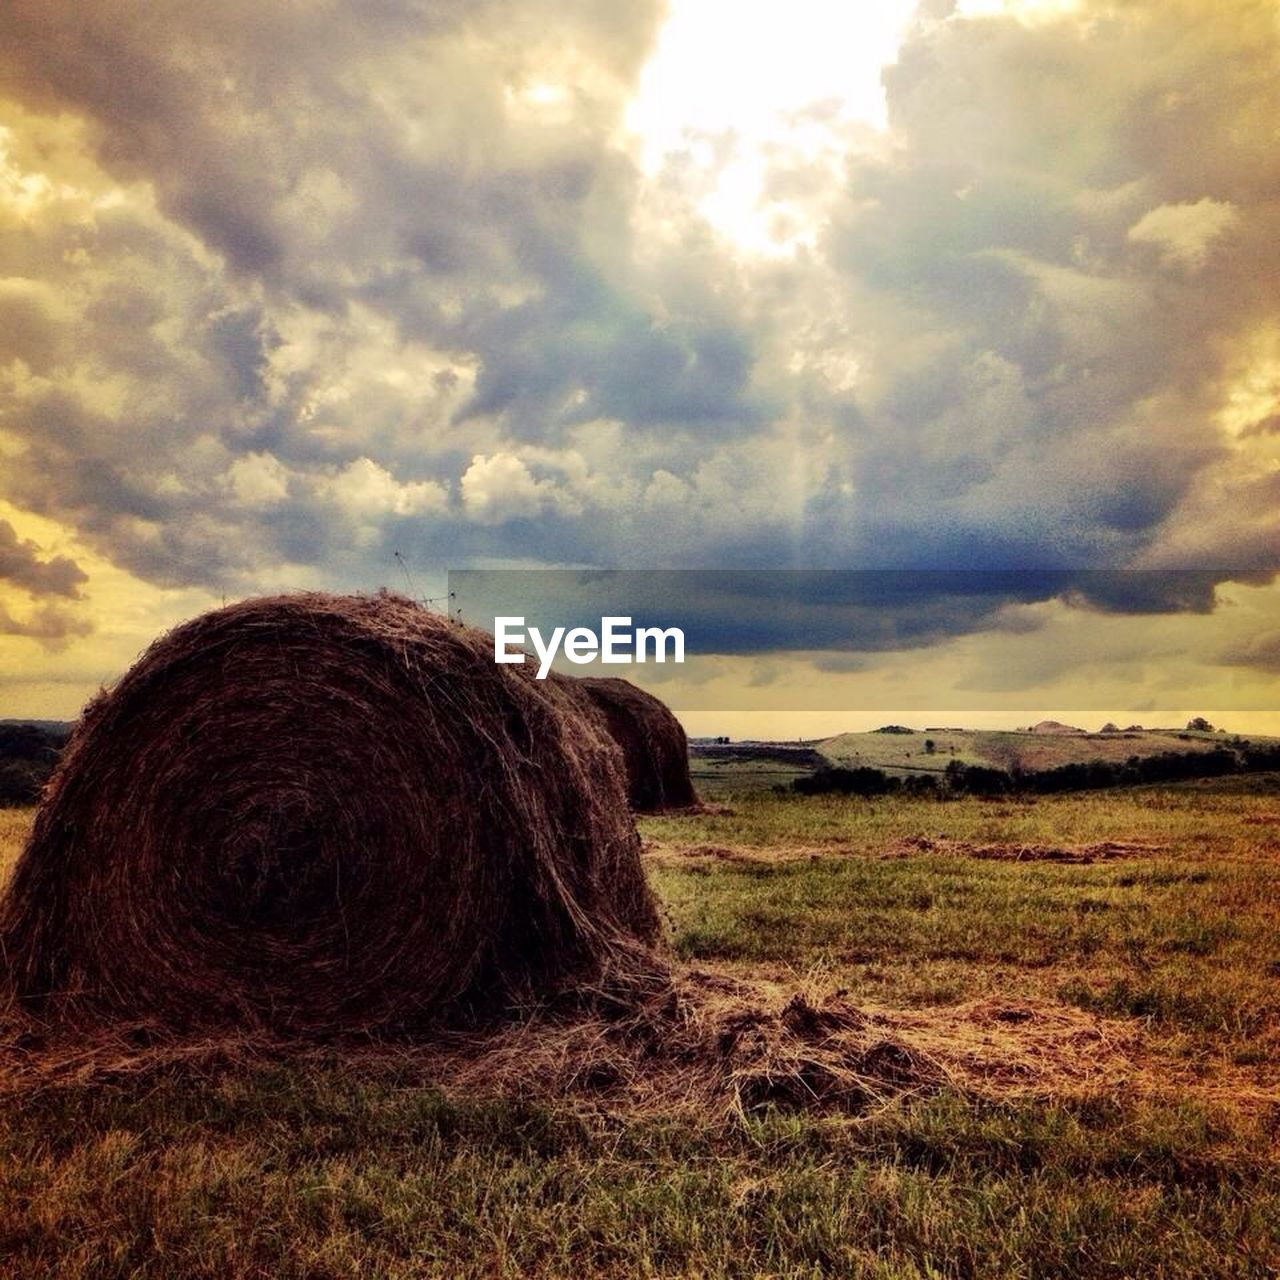 Hay Bales On Grassy Field Against Cloudy Sky